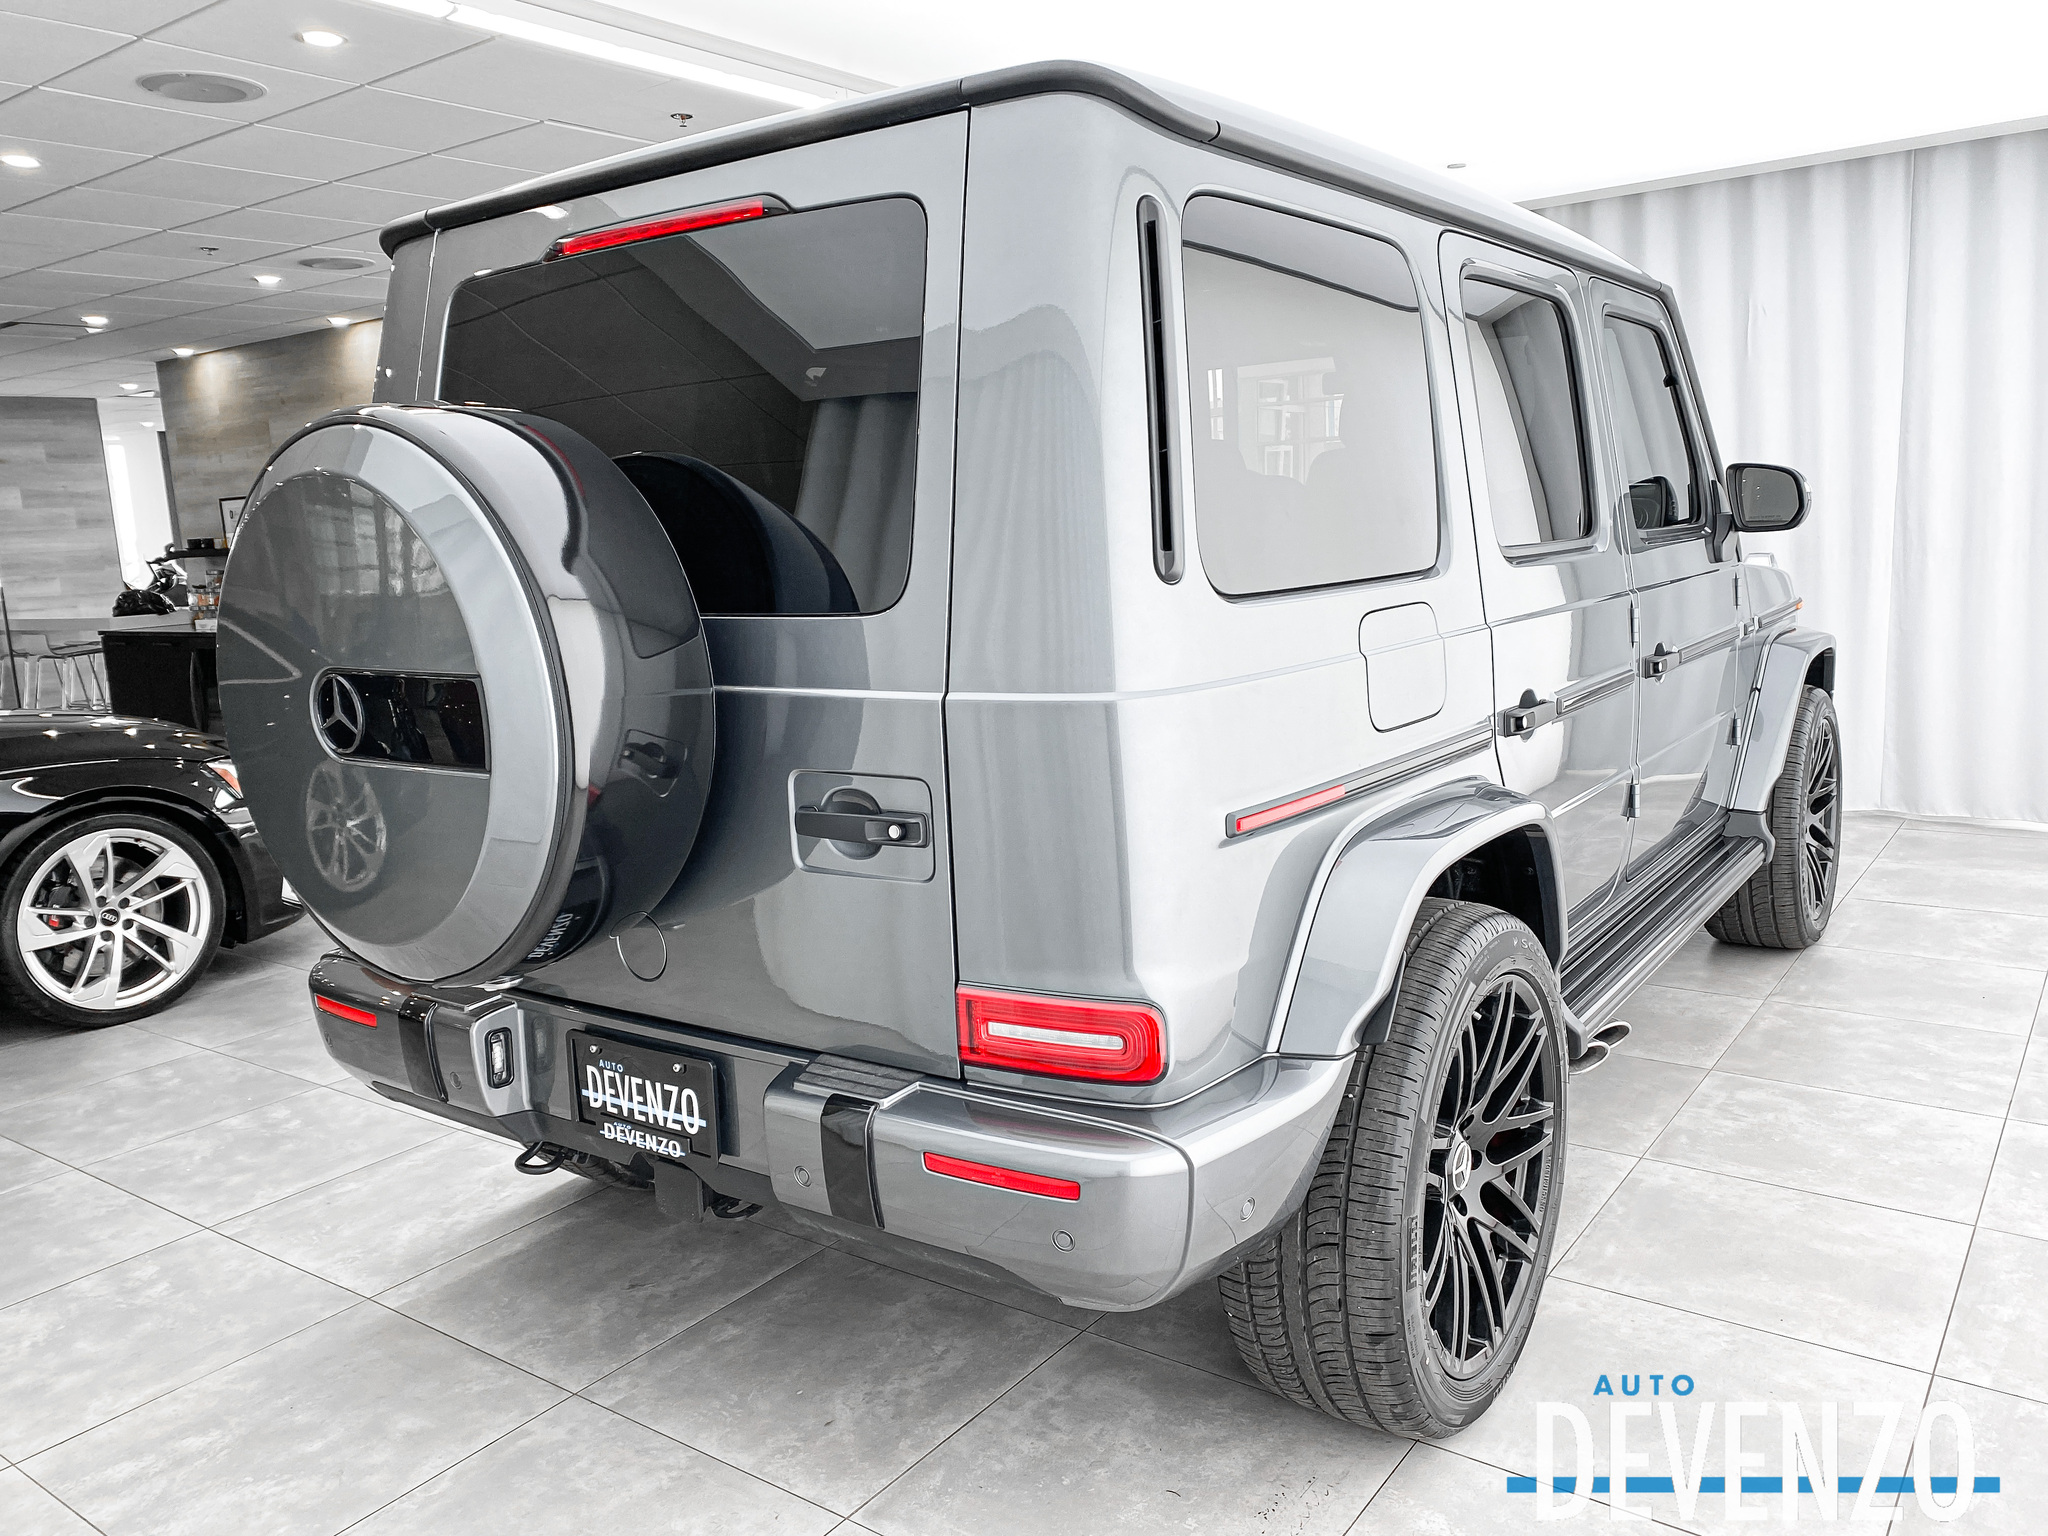 2021 Mercedes-Benz G-Class AMG G 63 4MATIC SUV complet